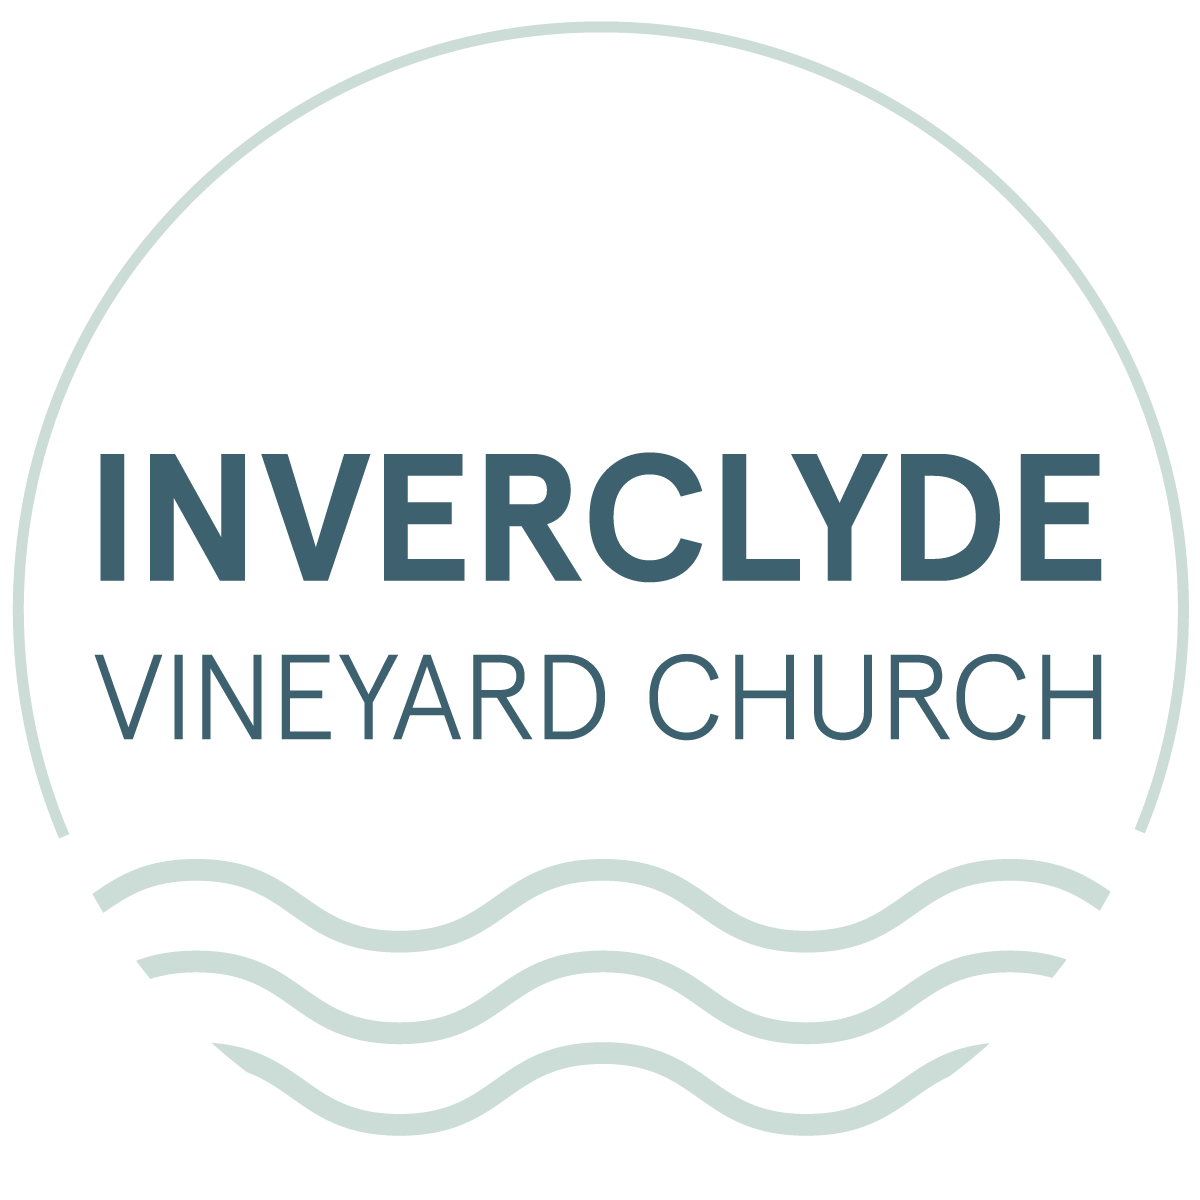 Inverclyde Vineyard Church